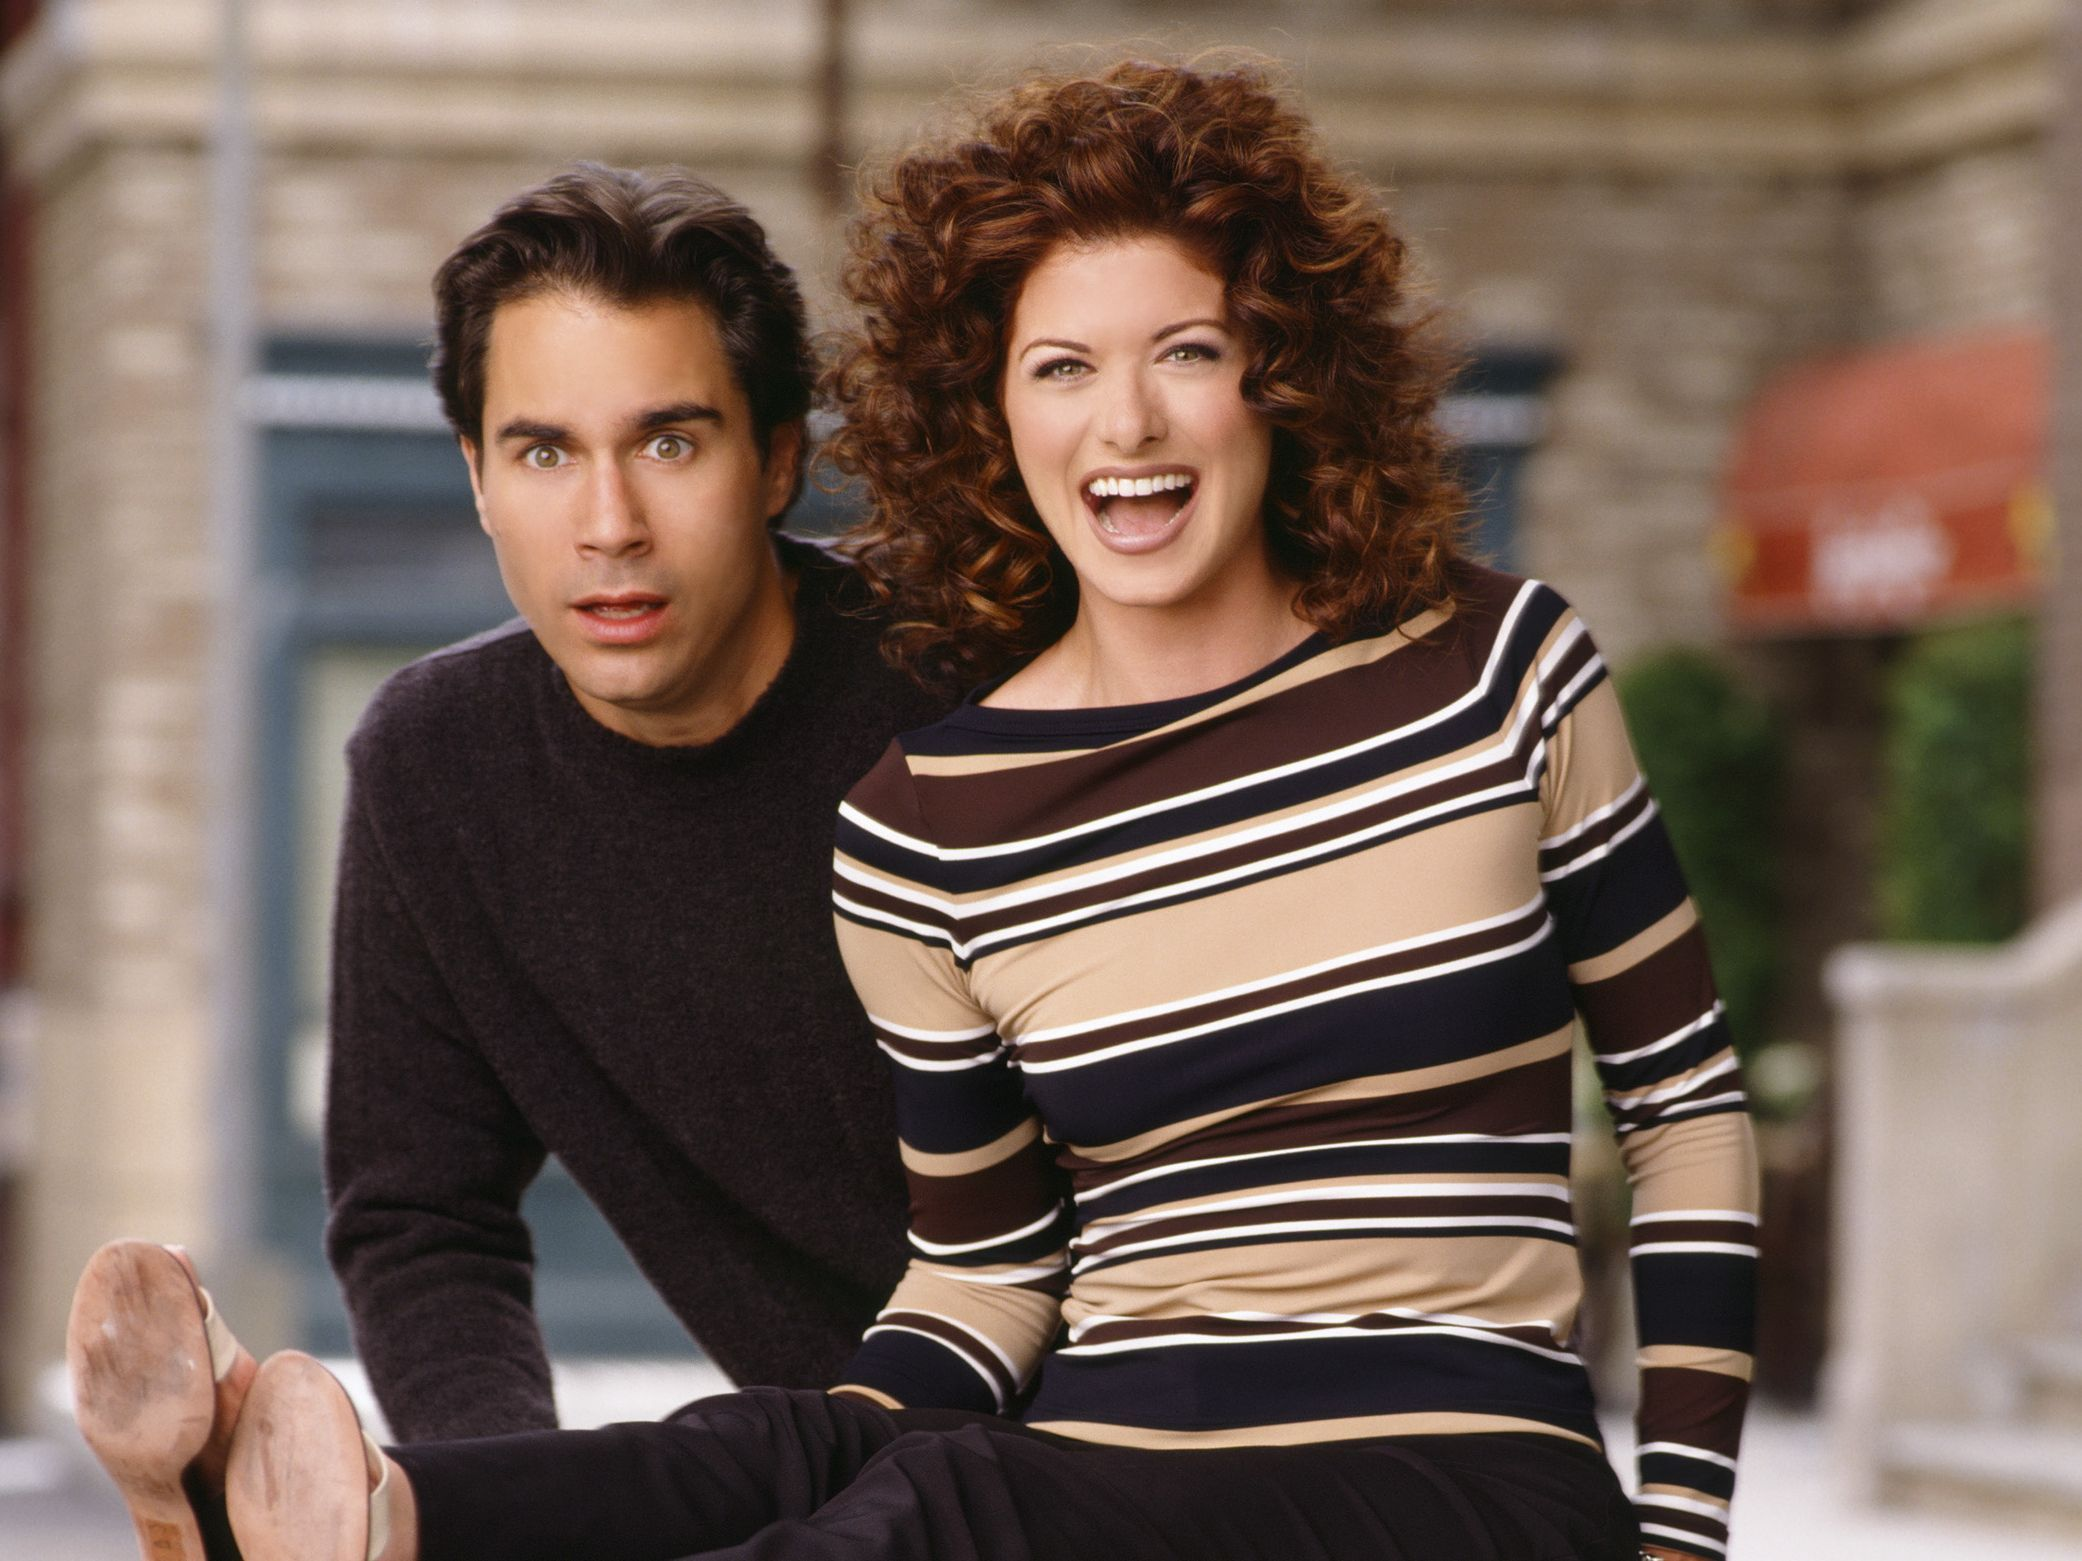 mgid ao image logotv 25 Things You Didn't Know About Will & Grace